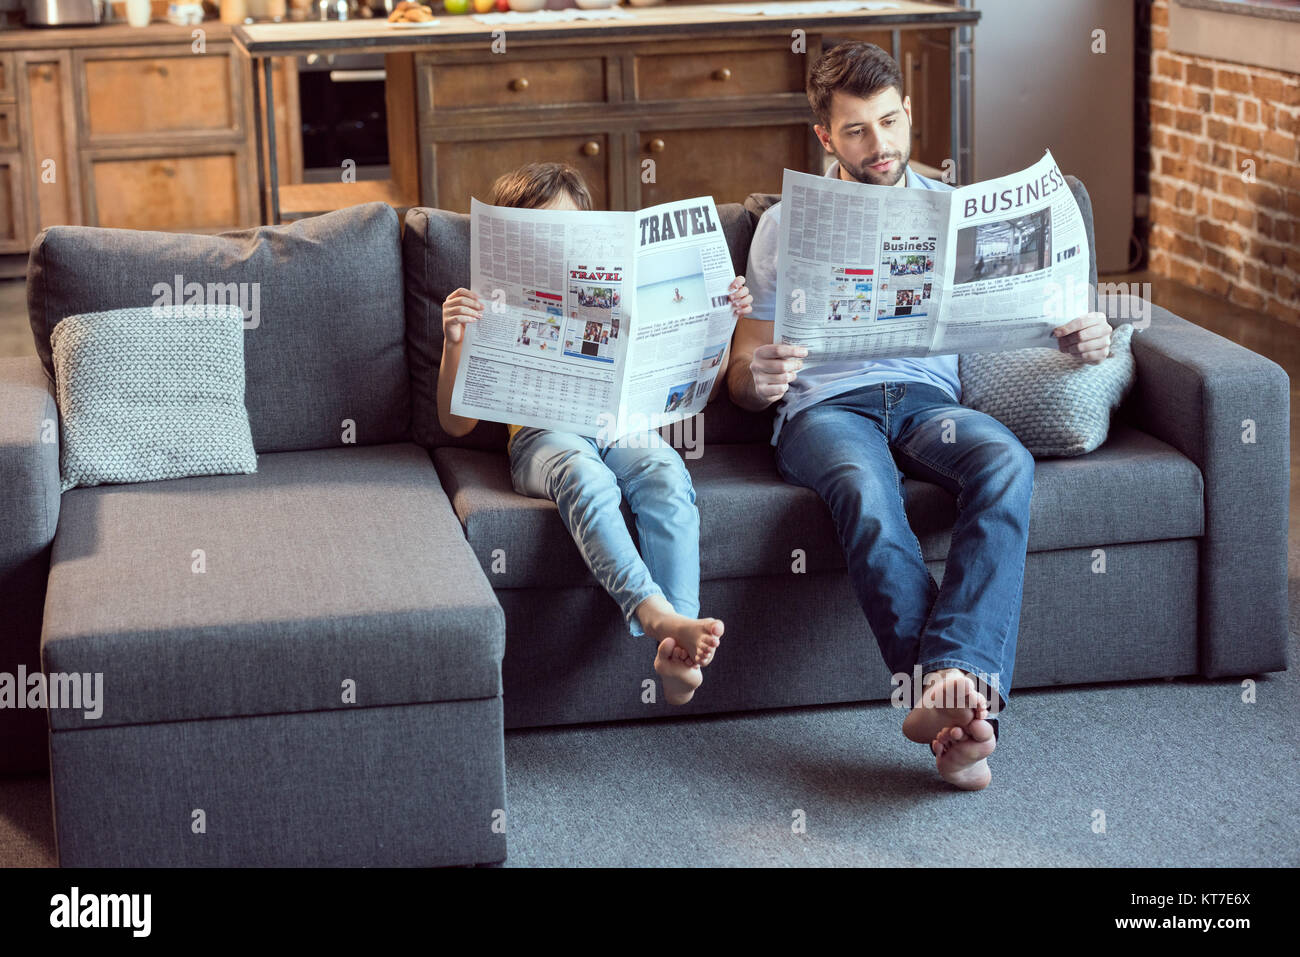 father and son sitting on couch and reading newspapers - Stock Image